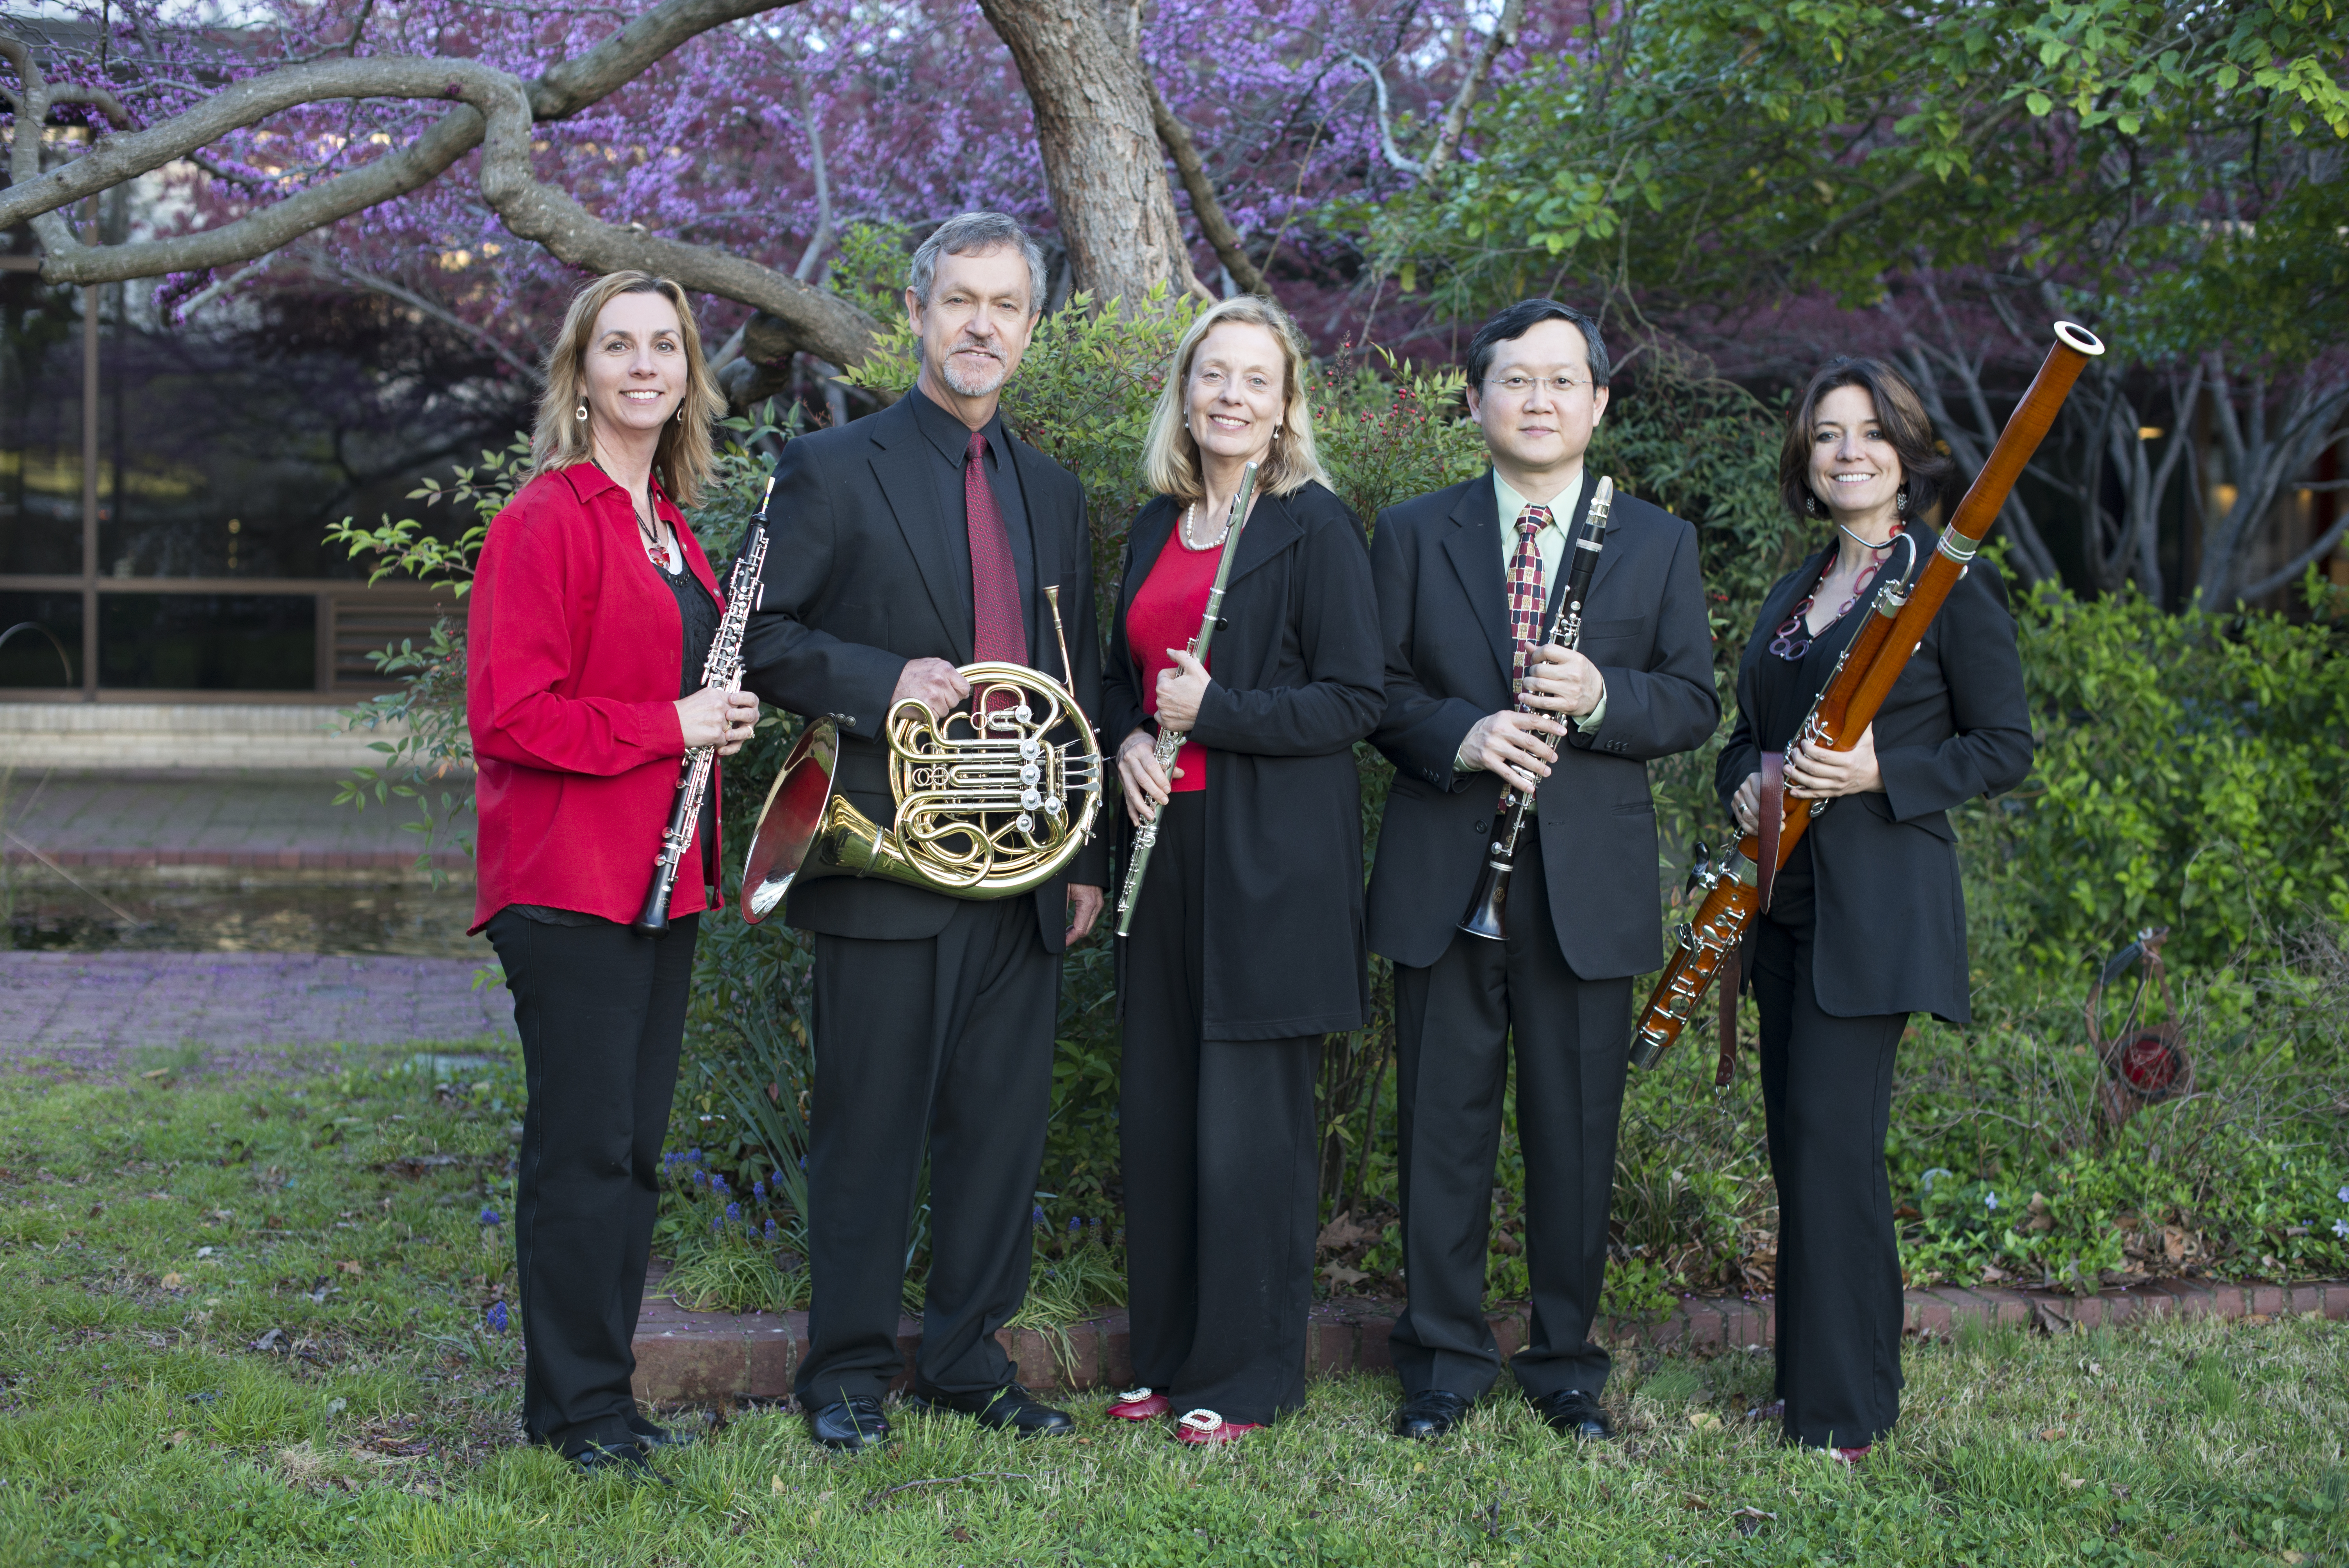 Members of the Lyrique Quintette posing with their instruments outside of the music building